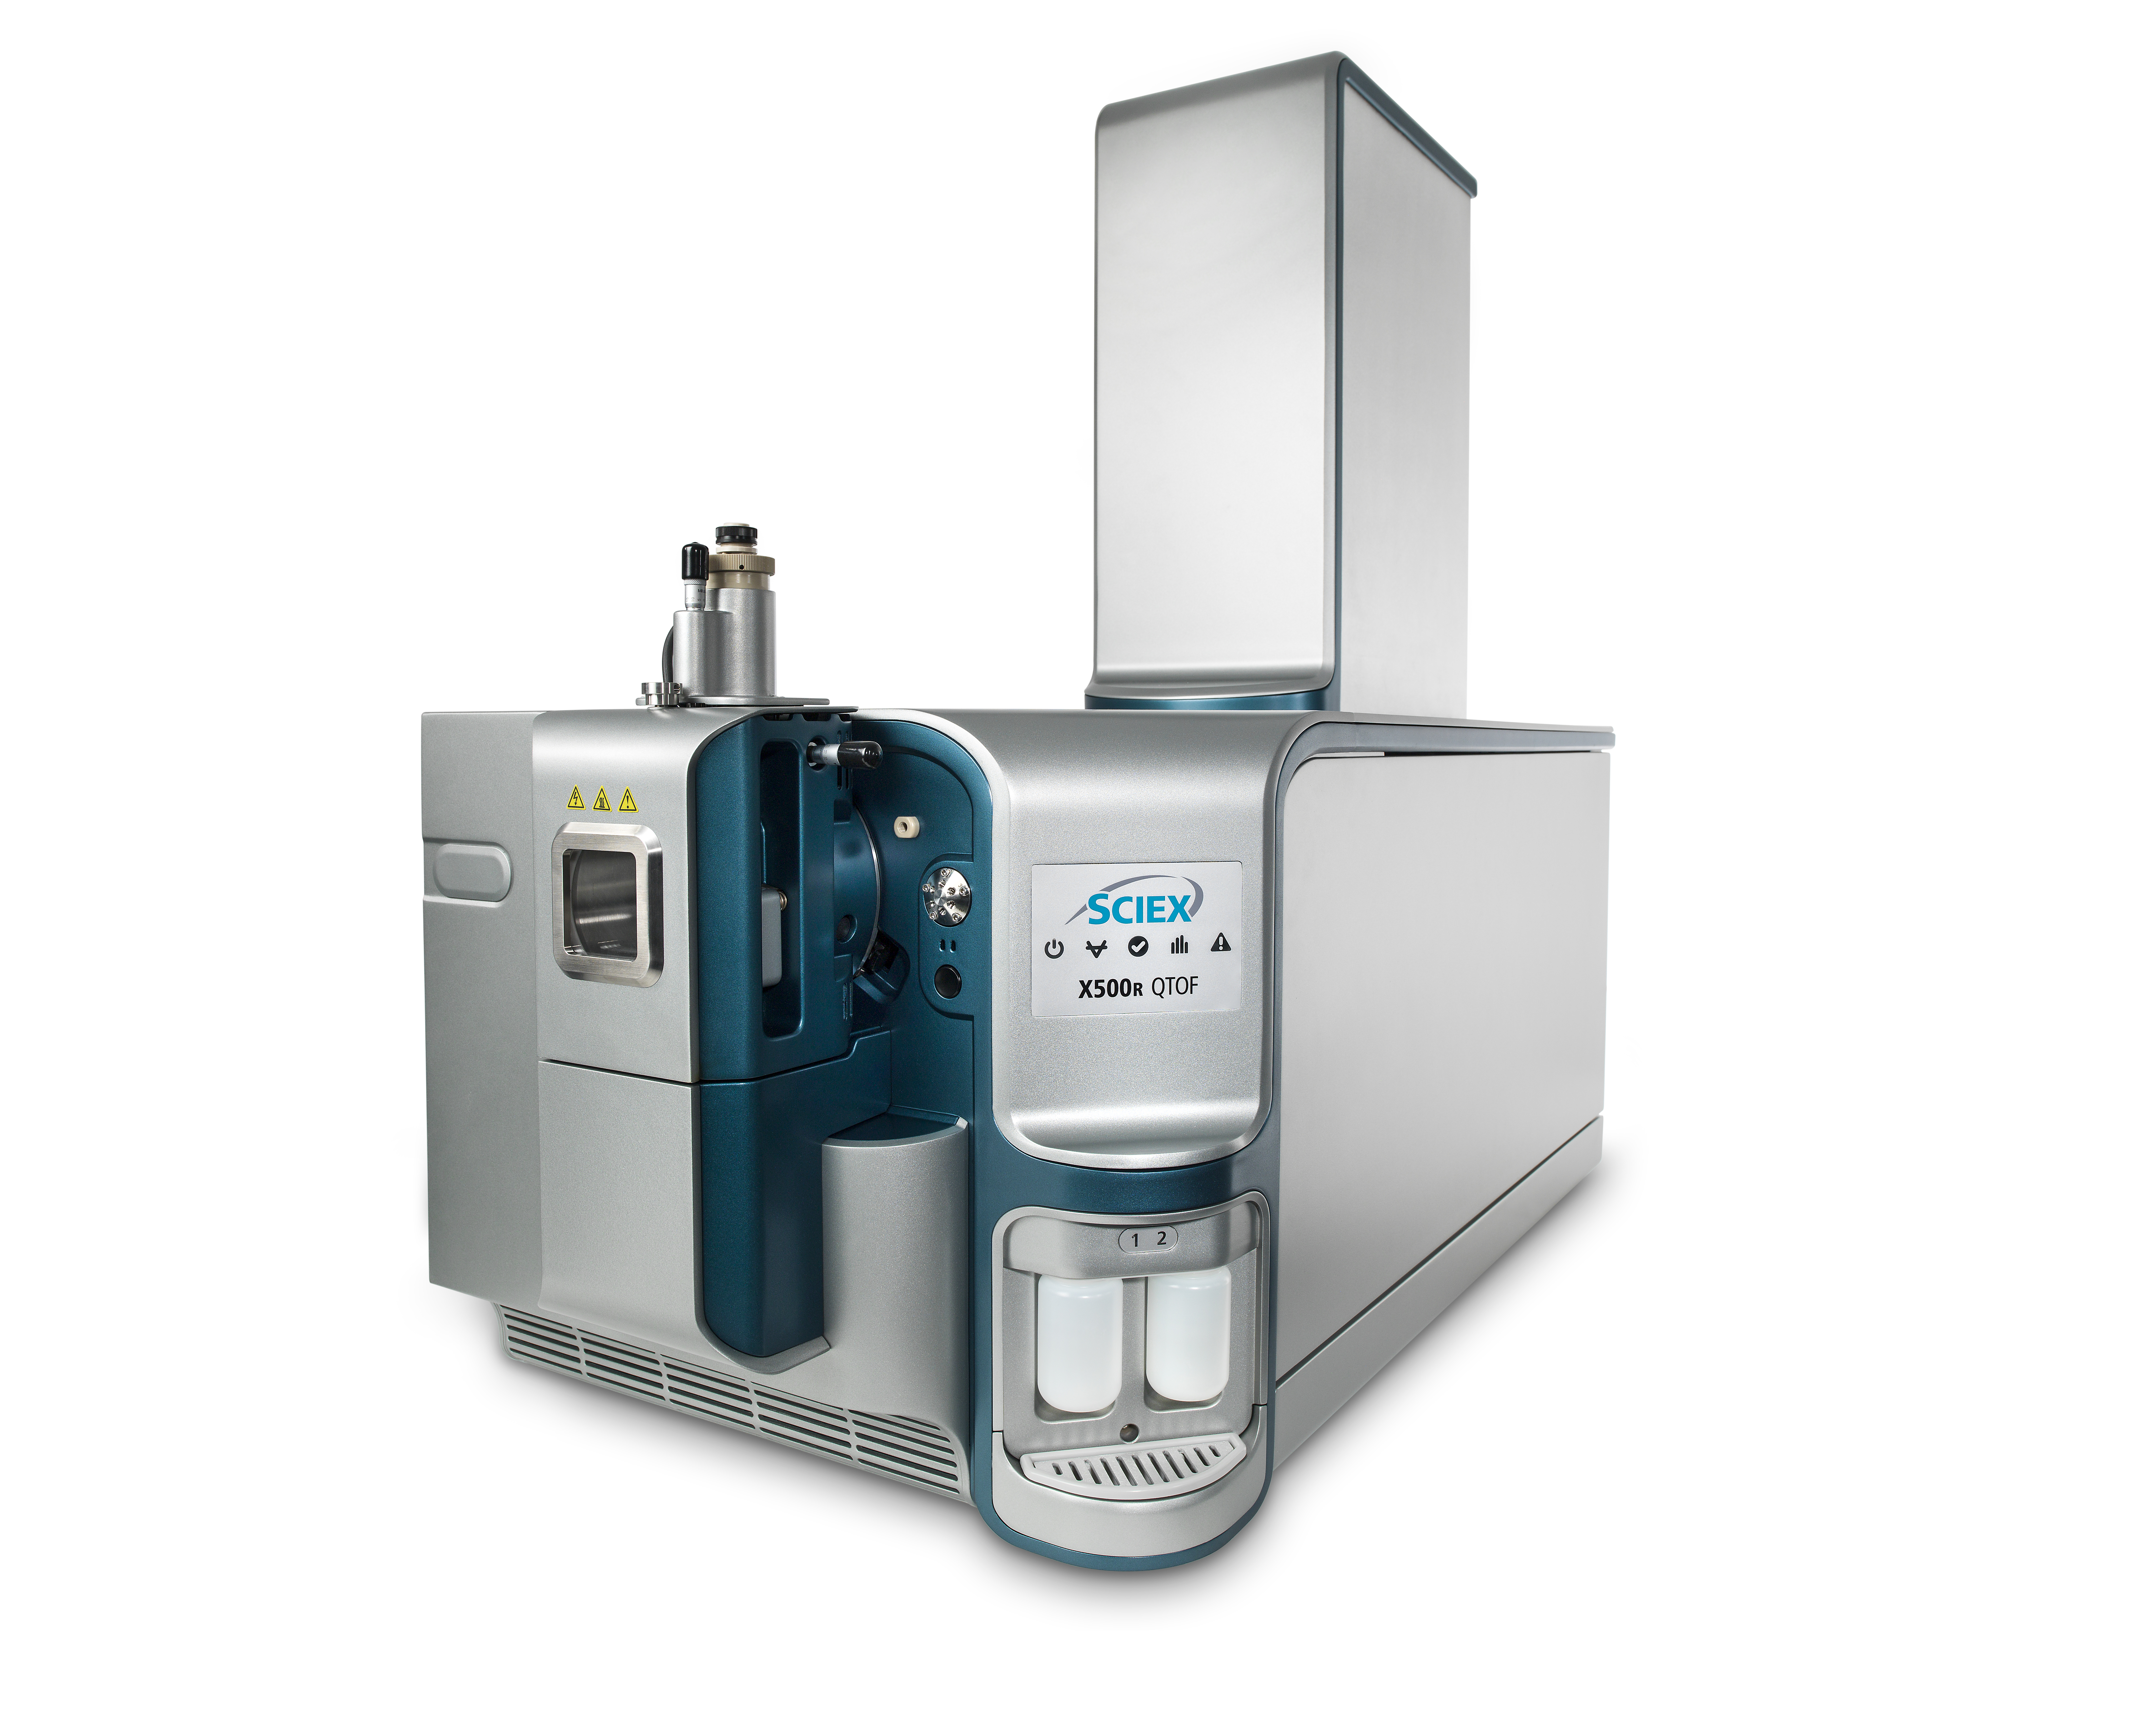 SCIEX Launches Brand New High Resolution Mass Spec System